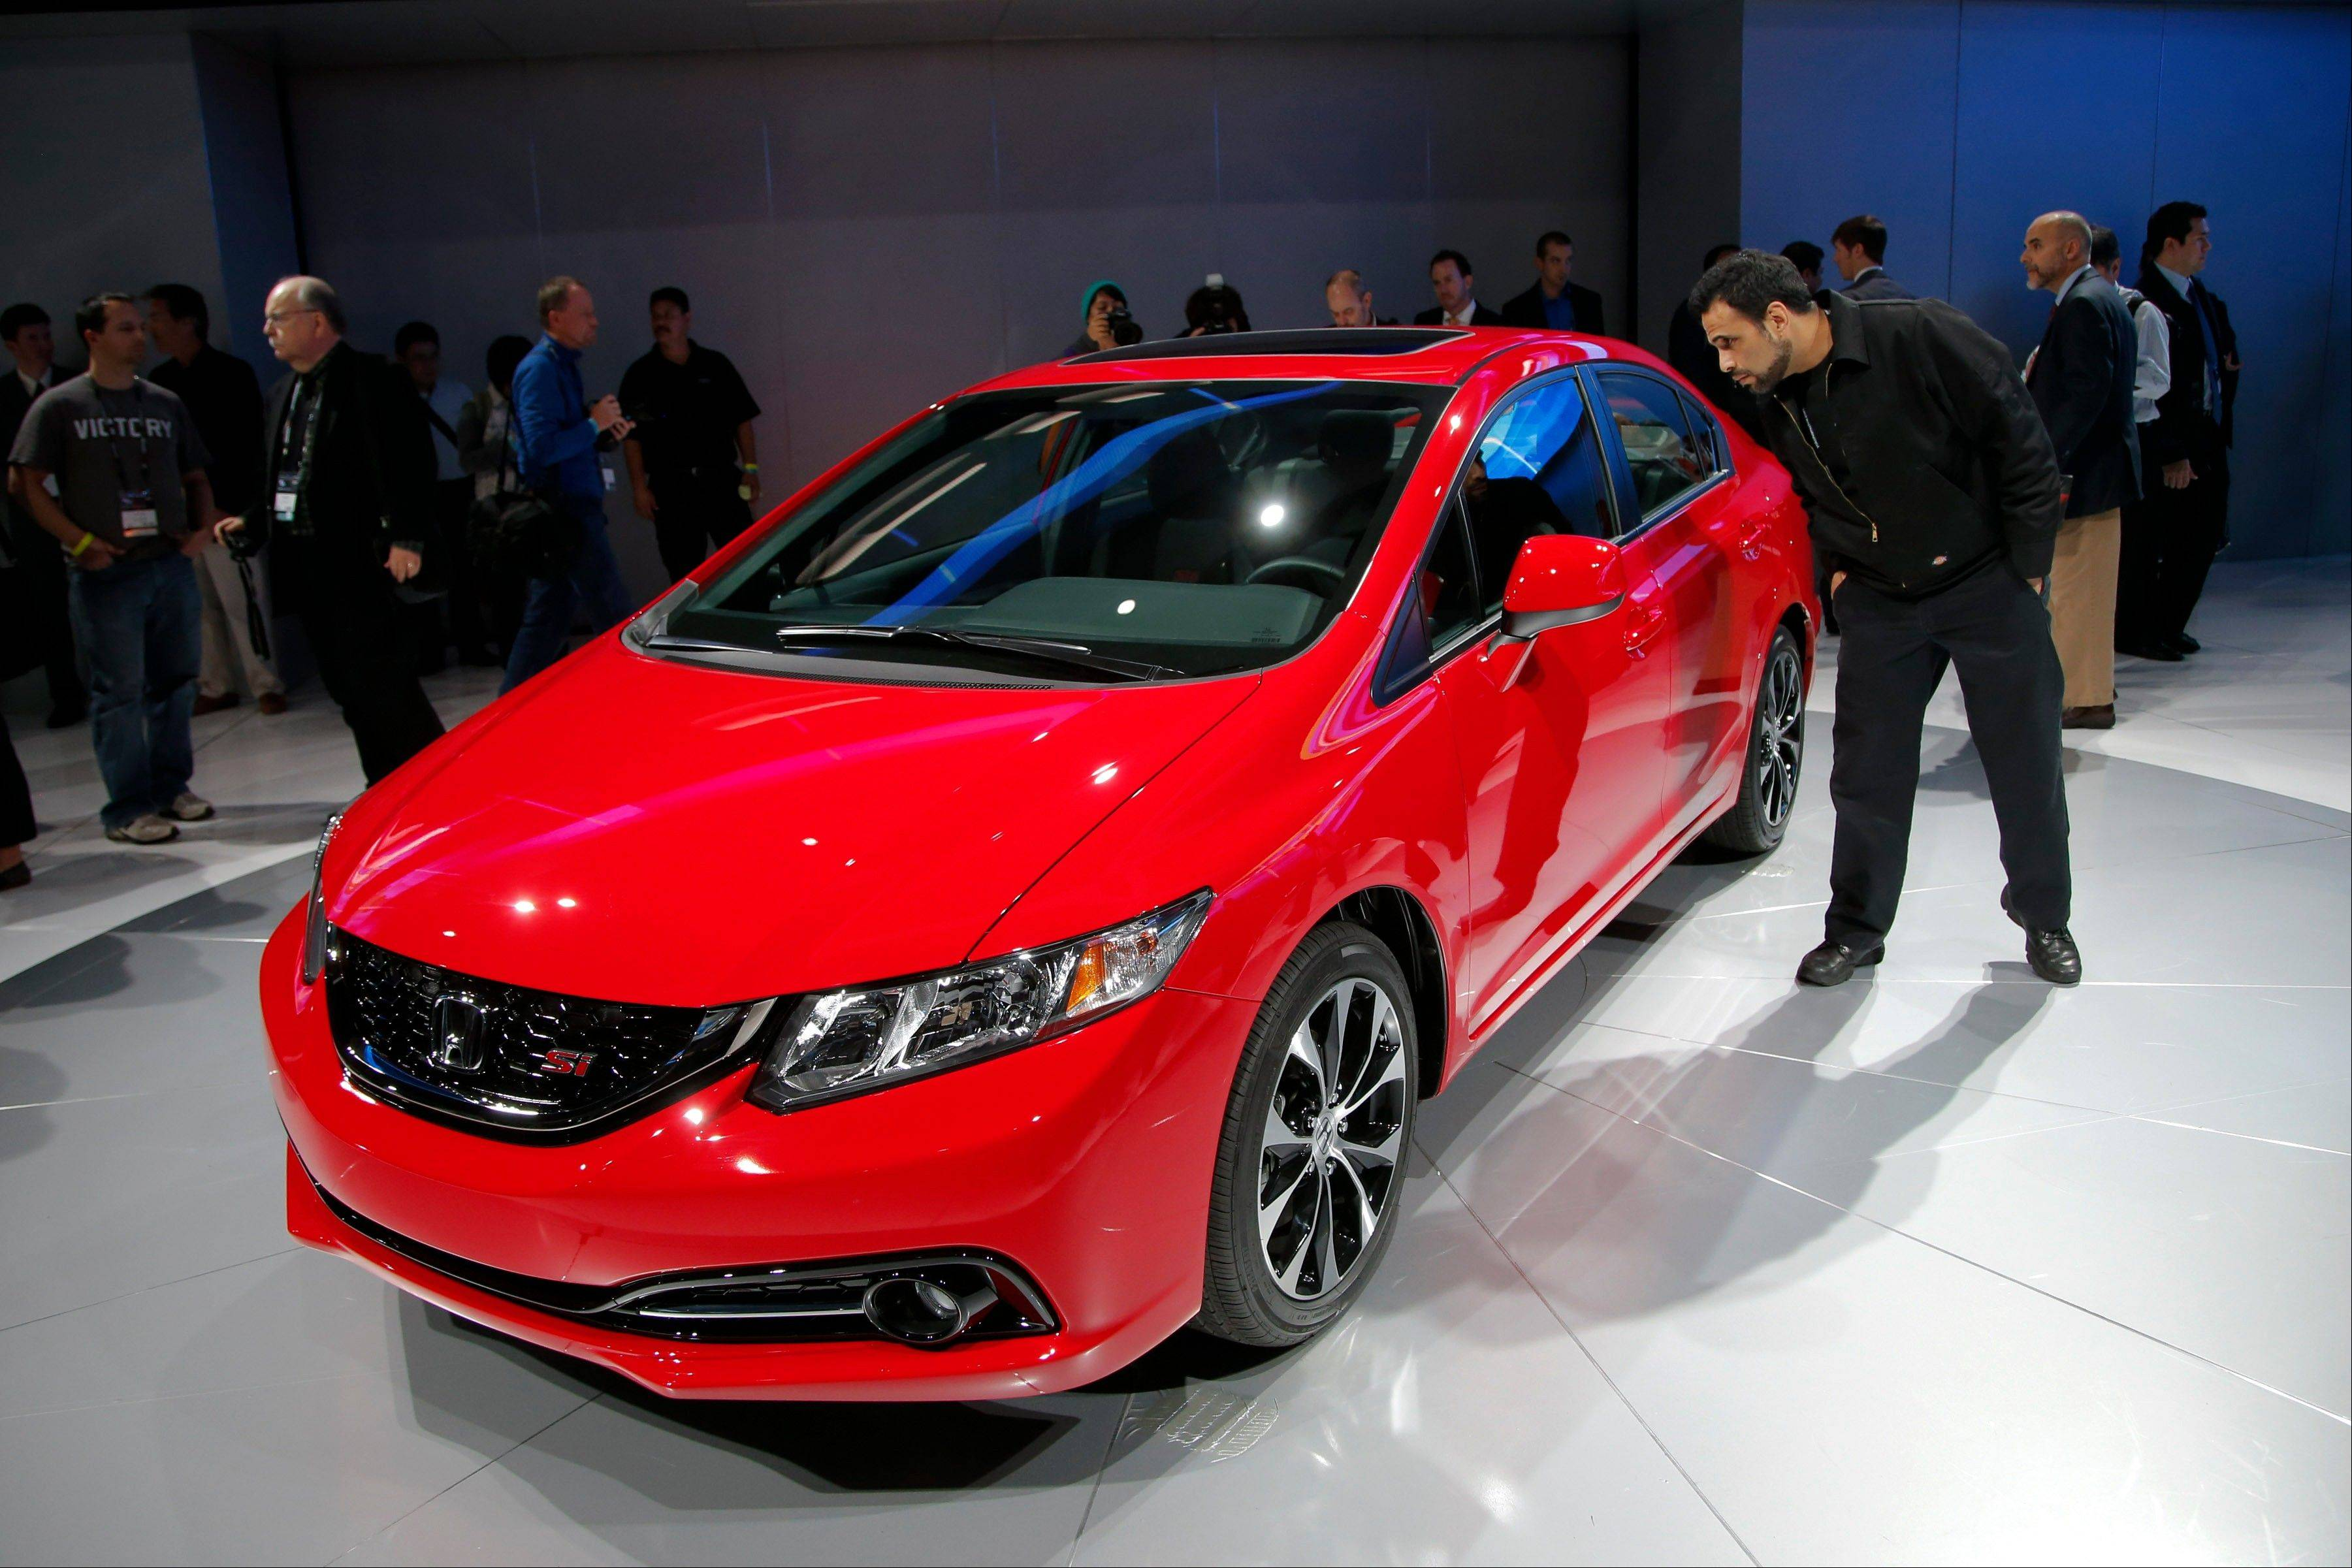 Show attendees look at the new Honda Civic at the LA Auto Show in Los Angeles Thursday.